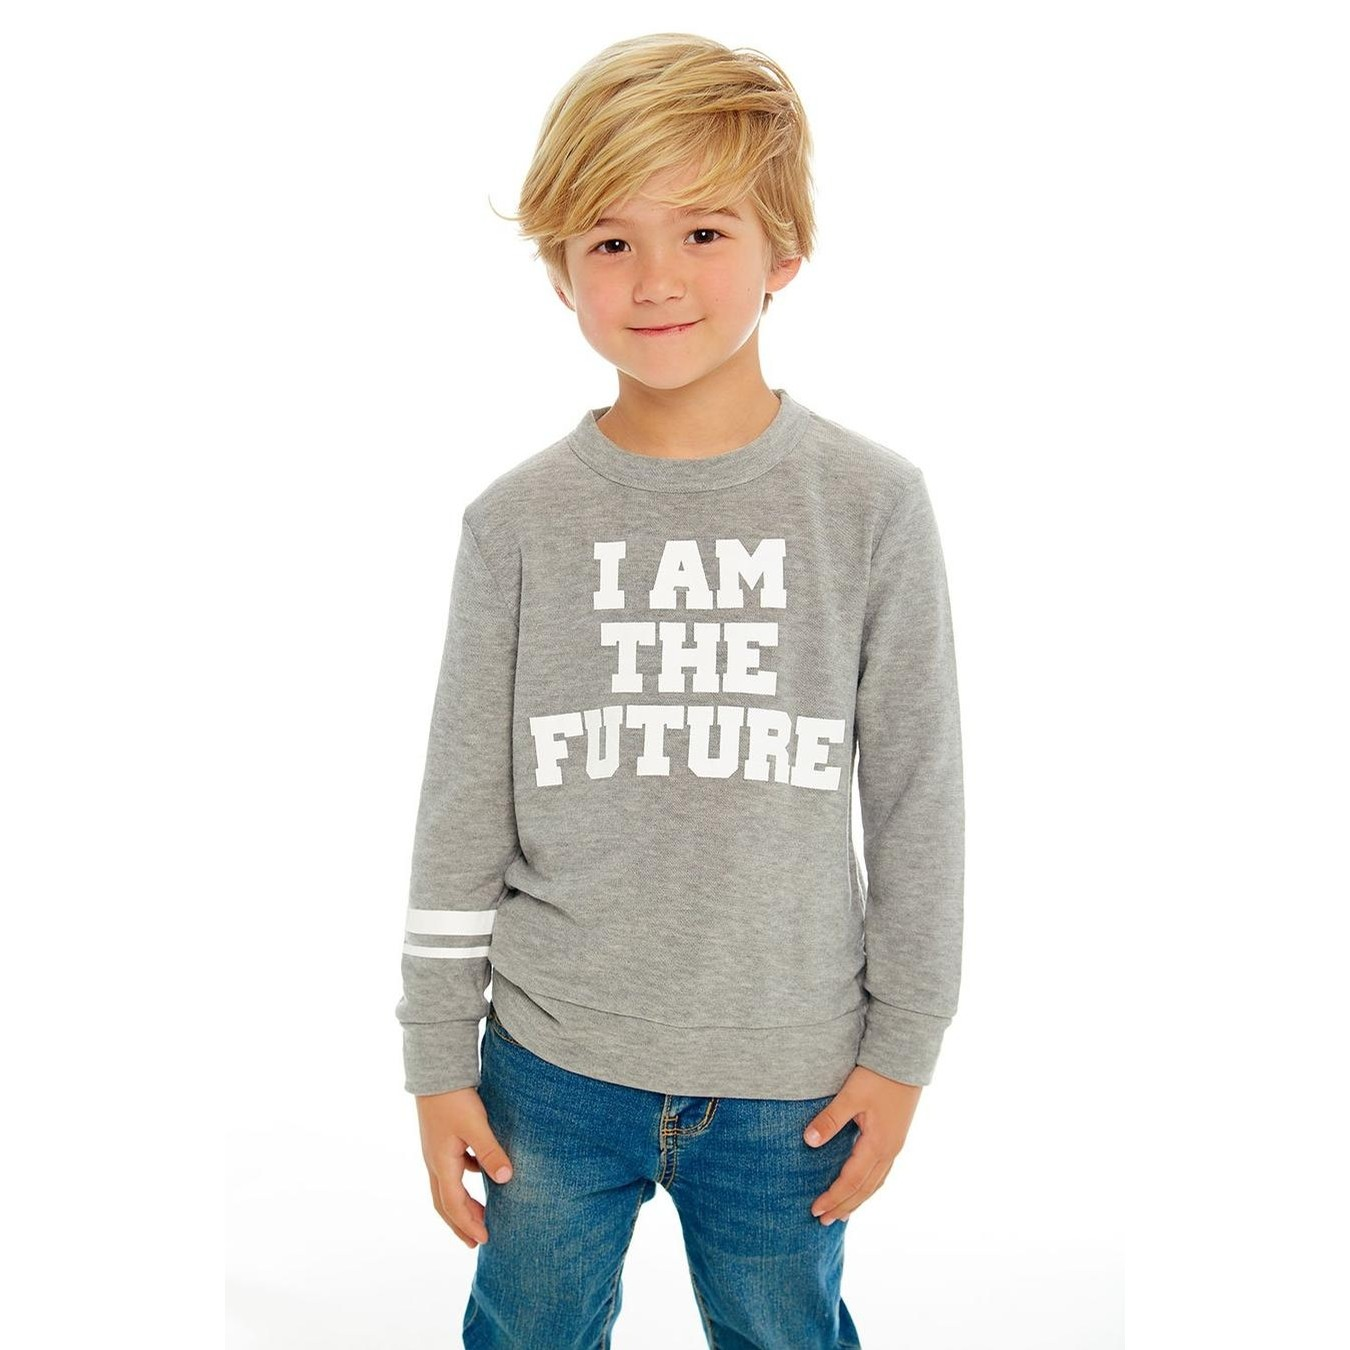 I Am The Future Cozy Knit L/S Crew Neck Pullover Sweater